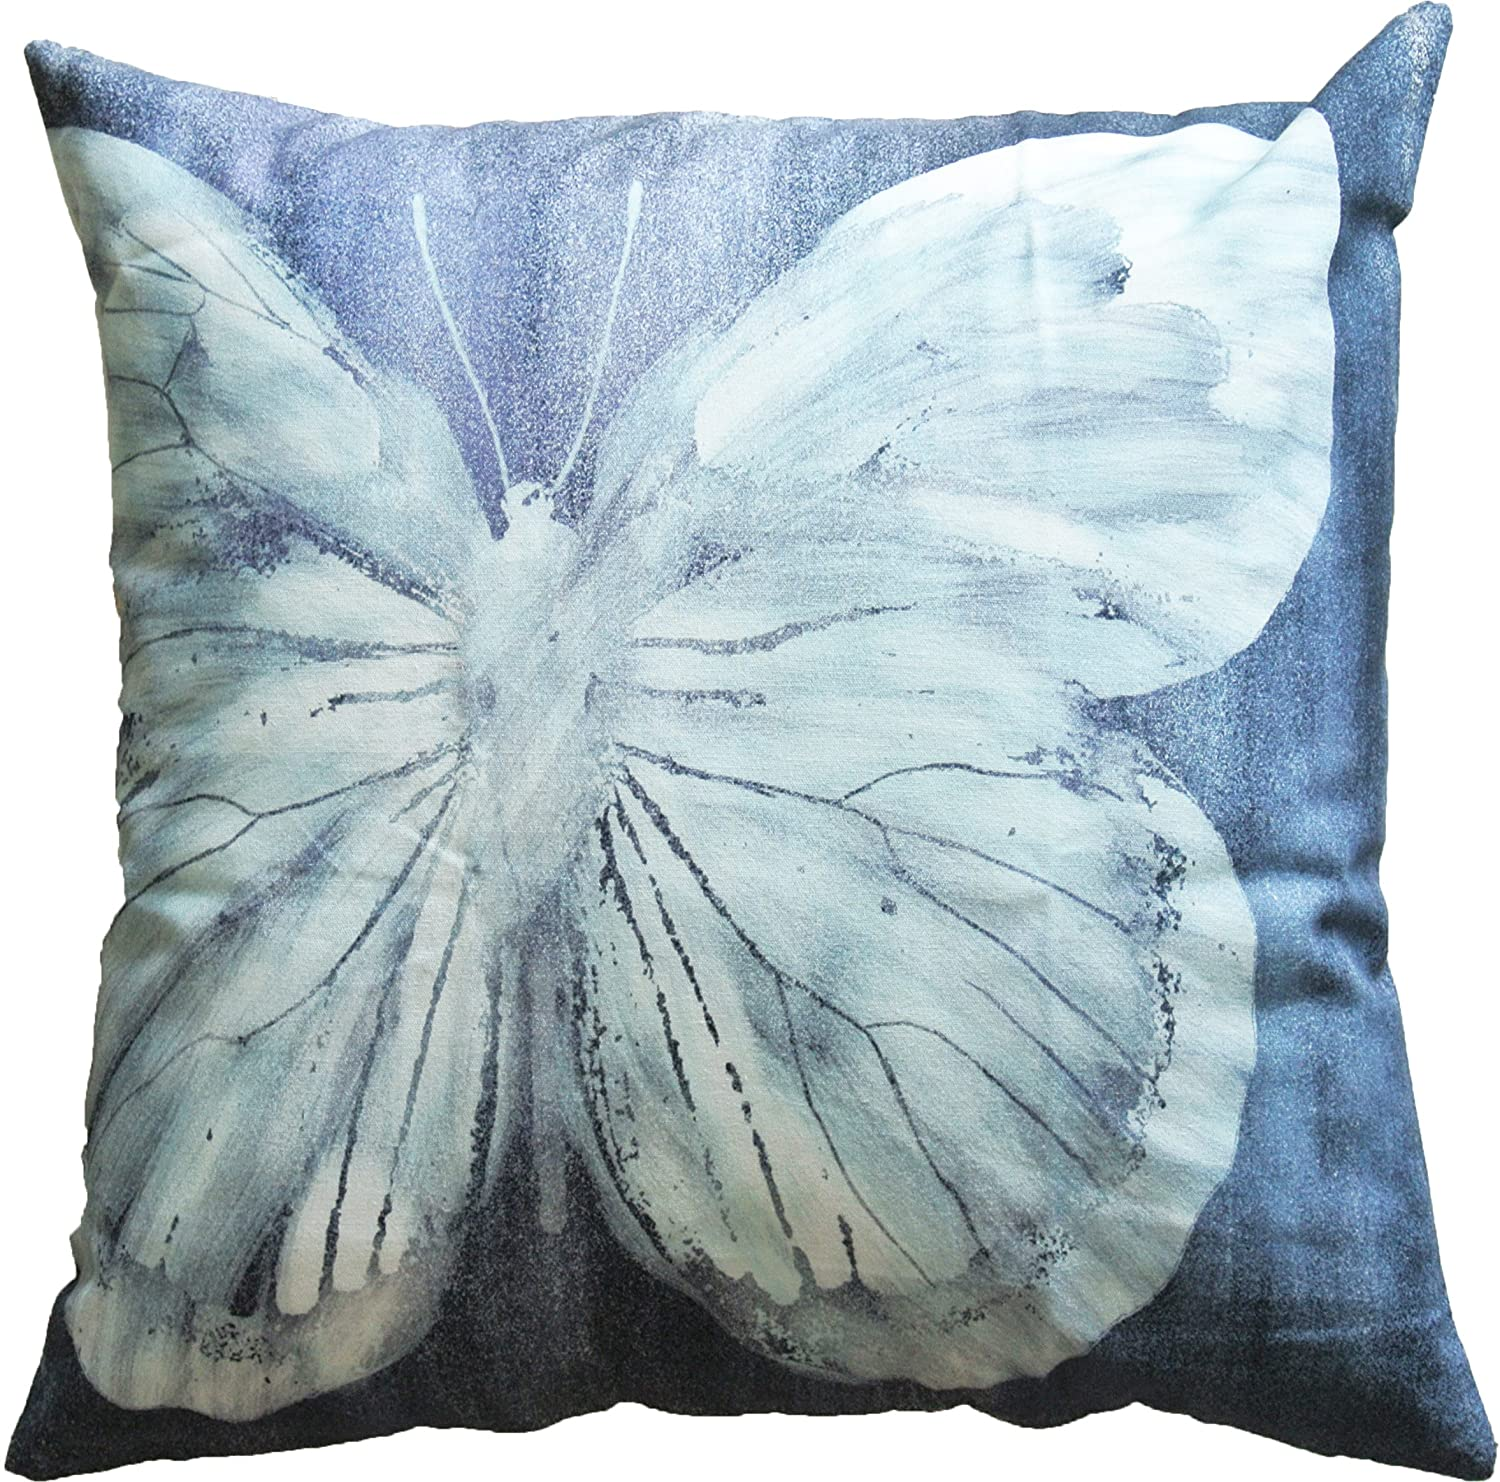 HOMETALE Butterfly Laser Print Decorative Throw Pillow Cover 18 Navy White